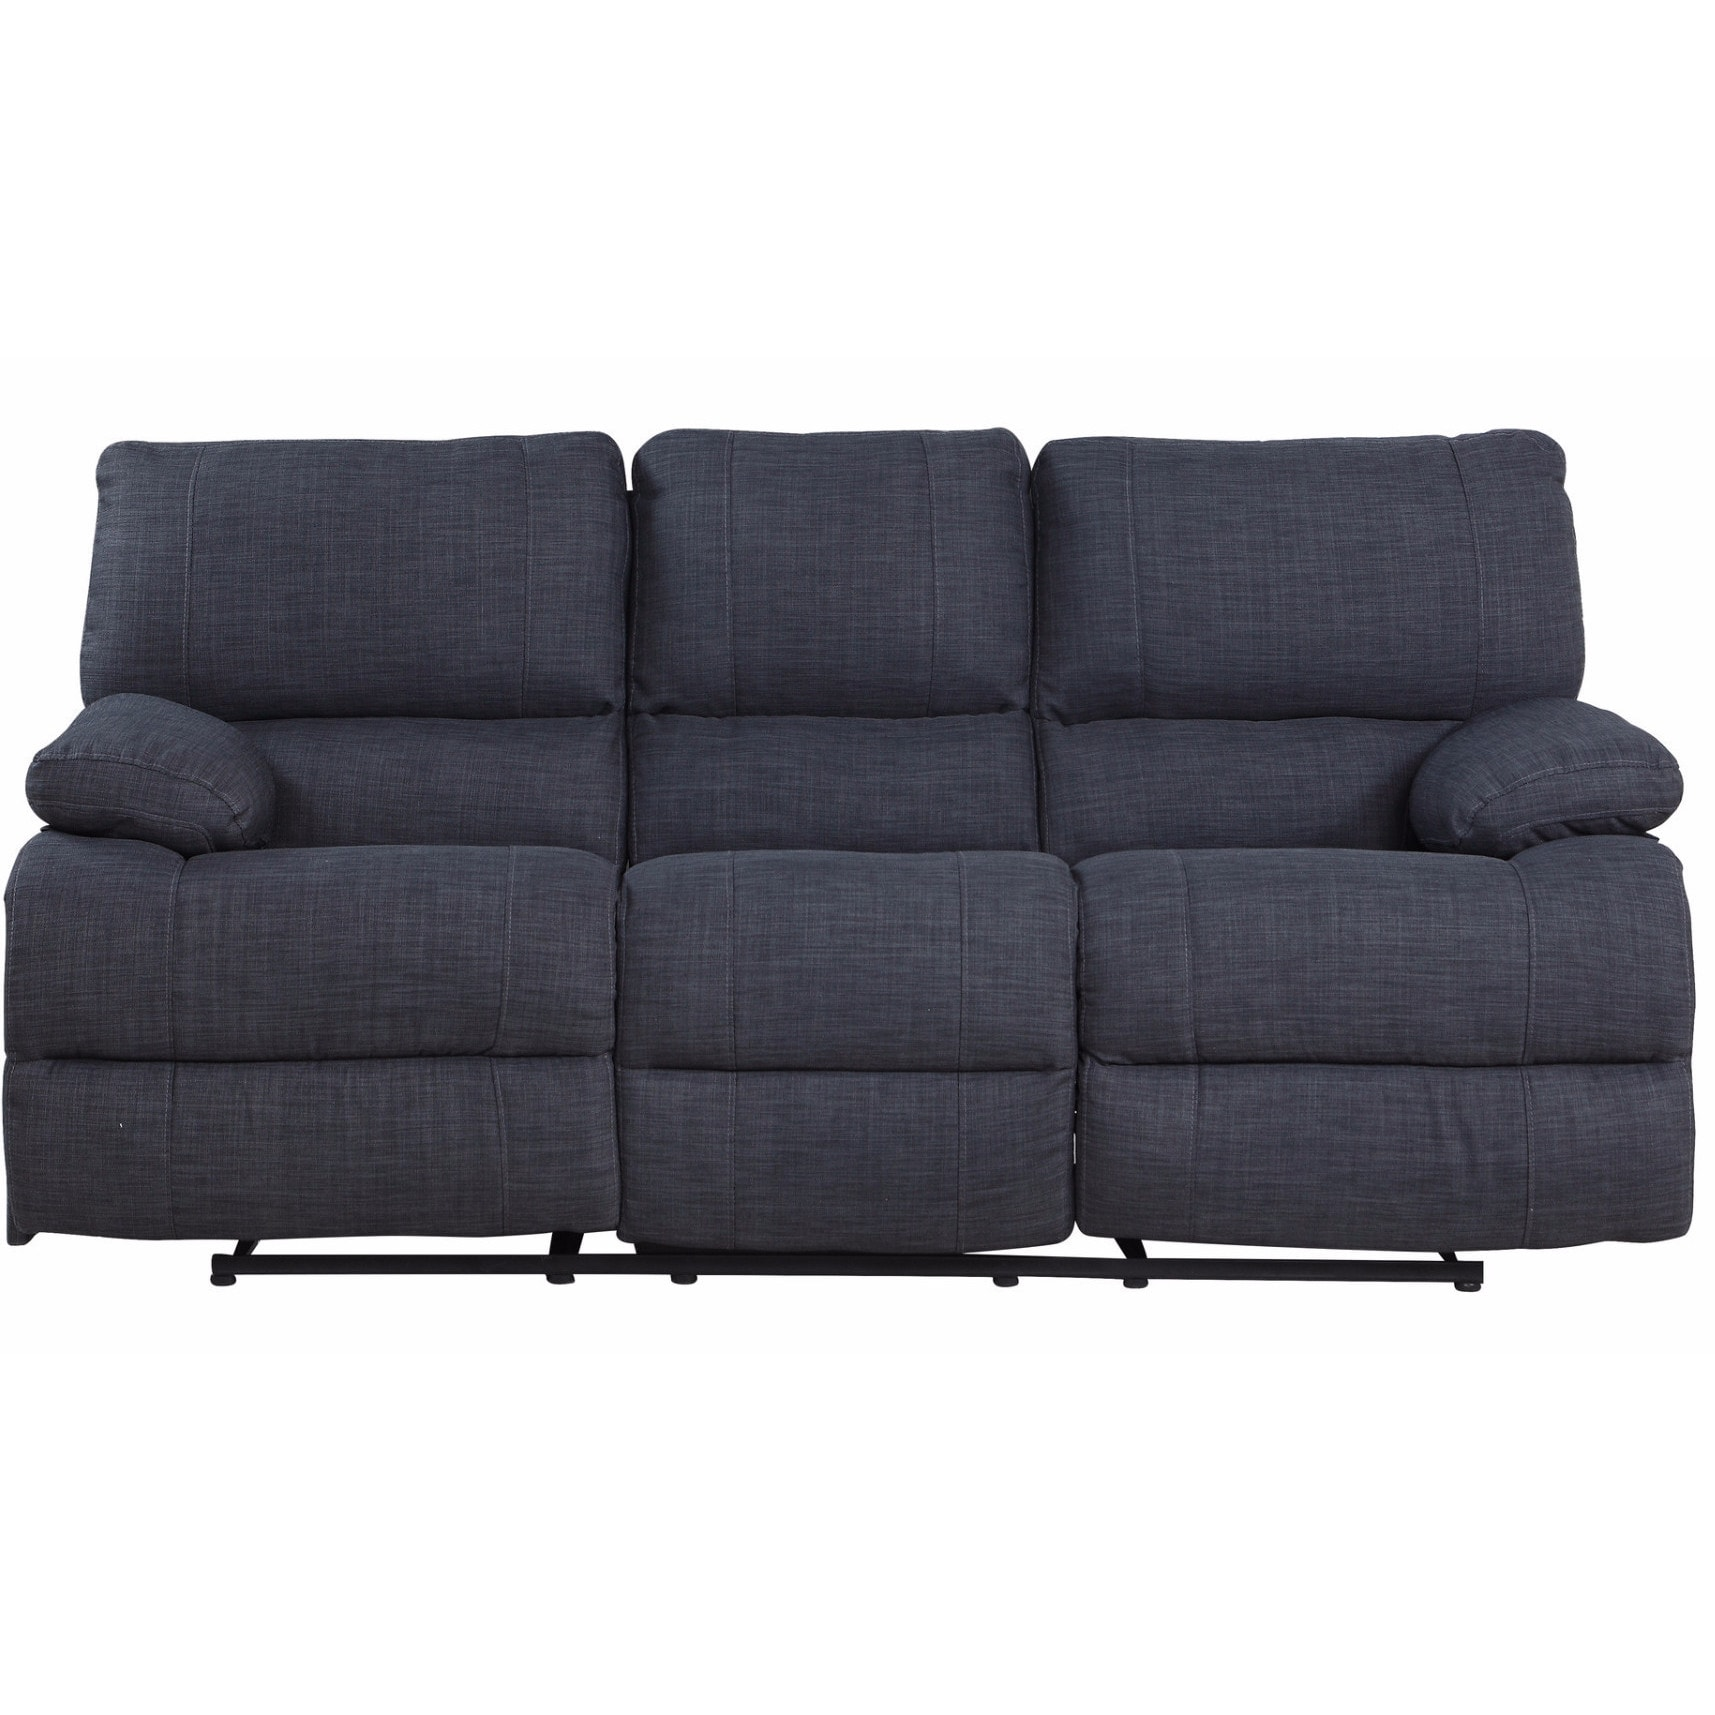 Sofology Quebec Grey Fabric Recliner Sofa